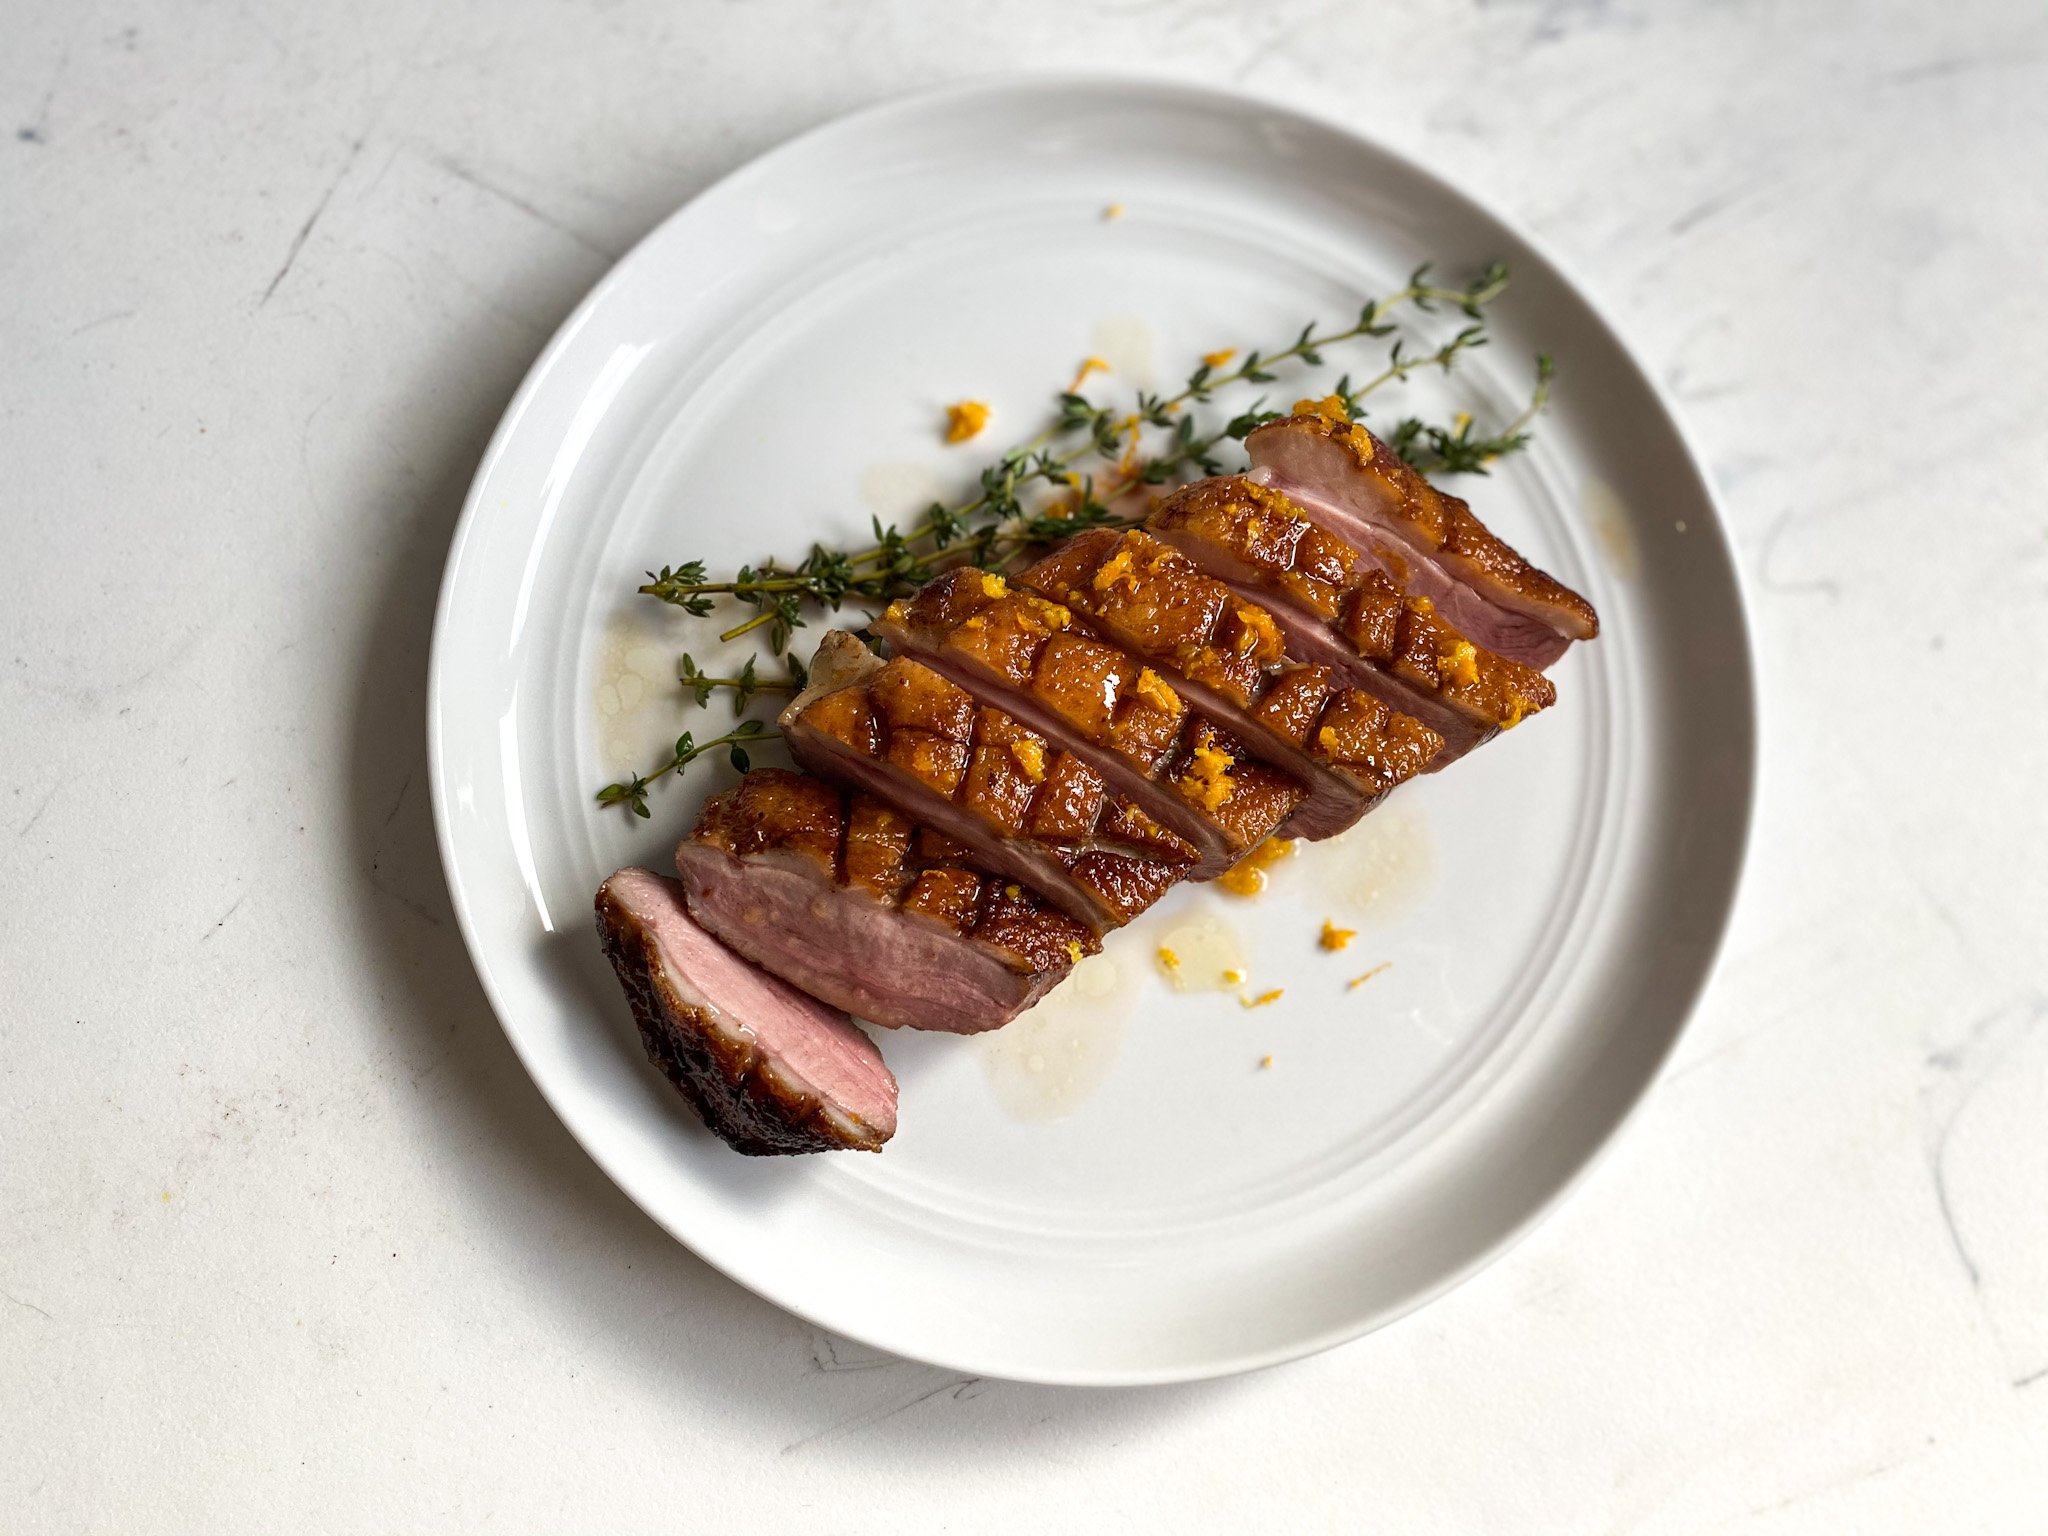 Sliced sous vide duck breast with orange sauce